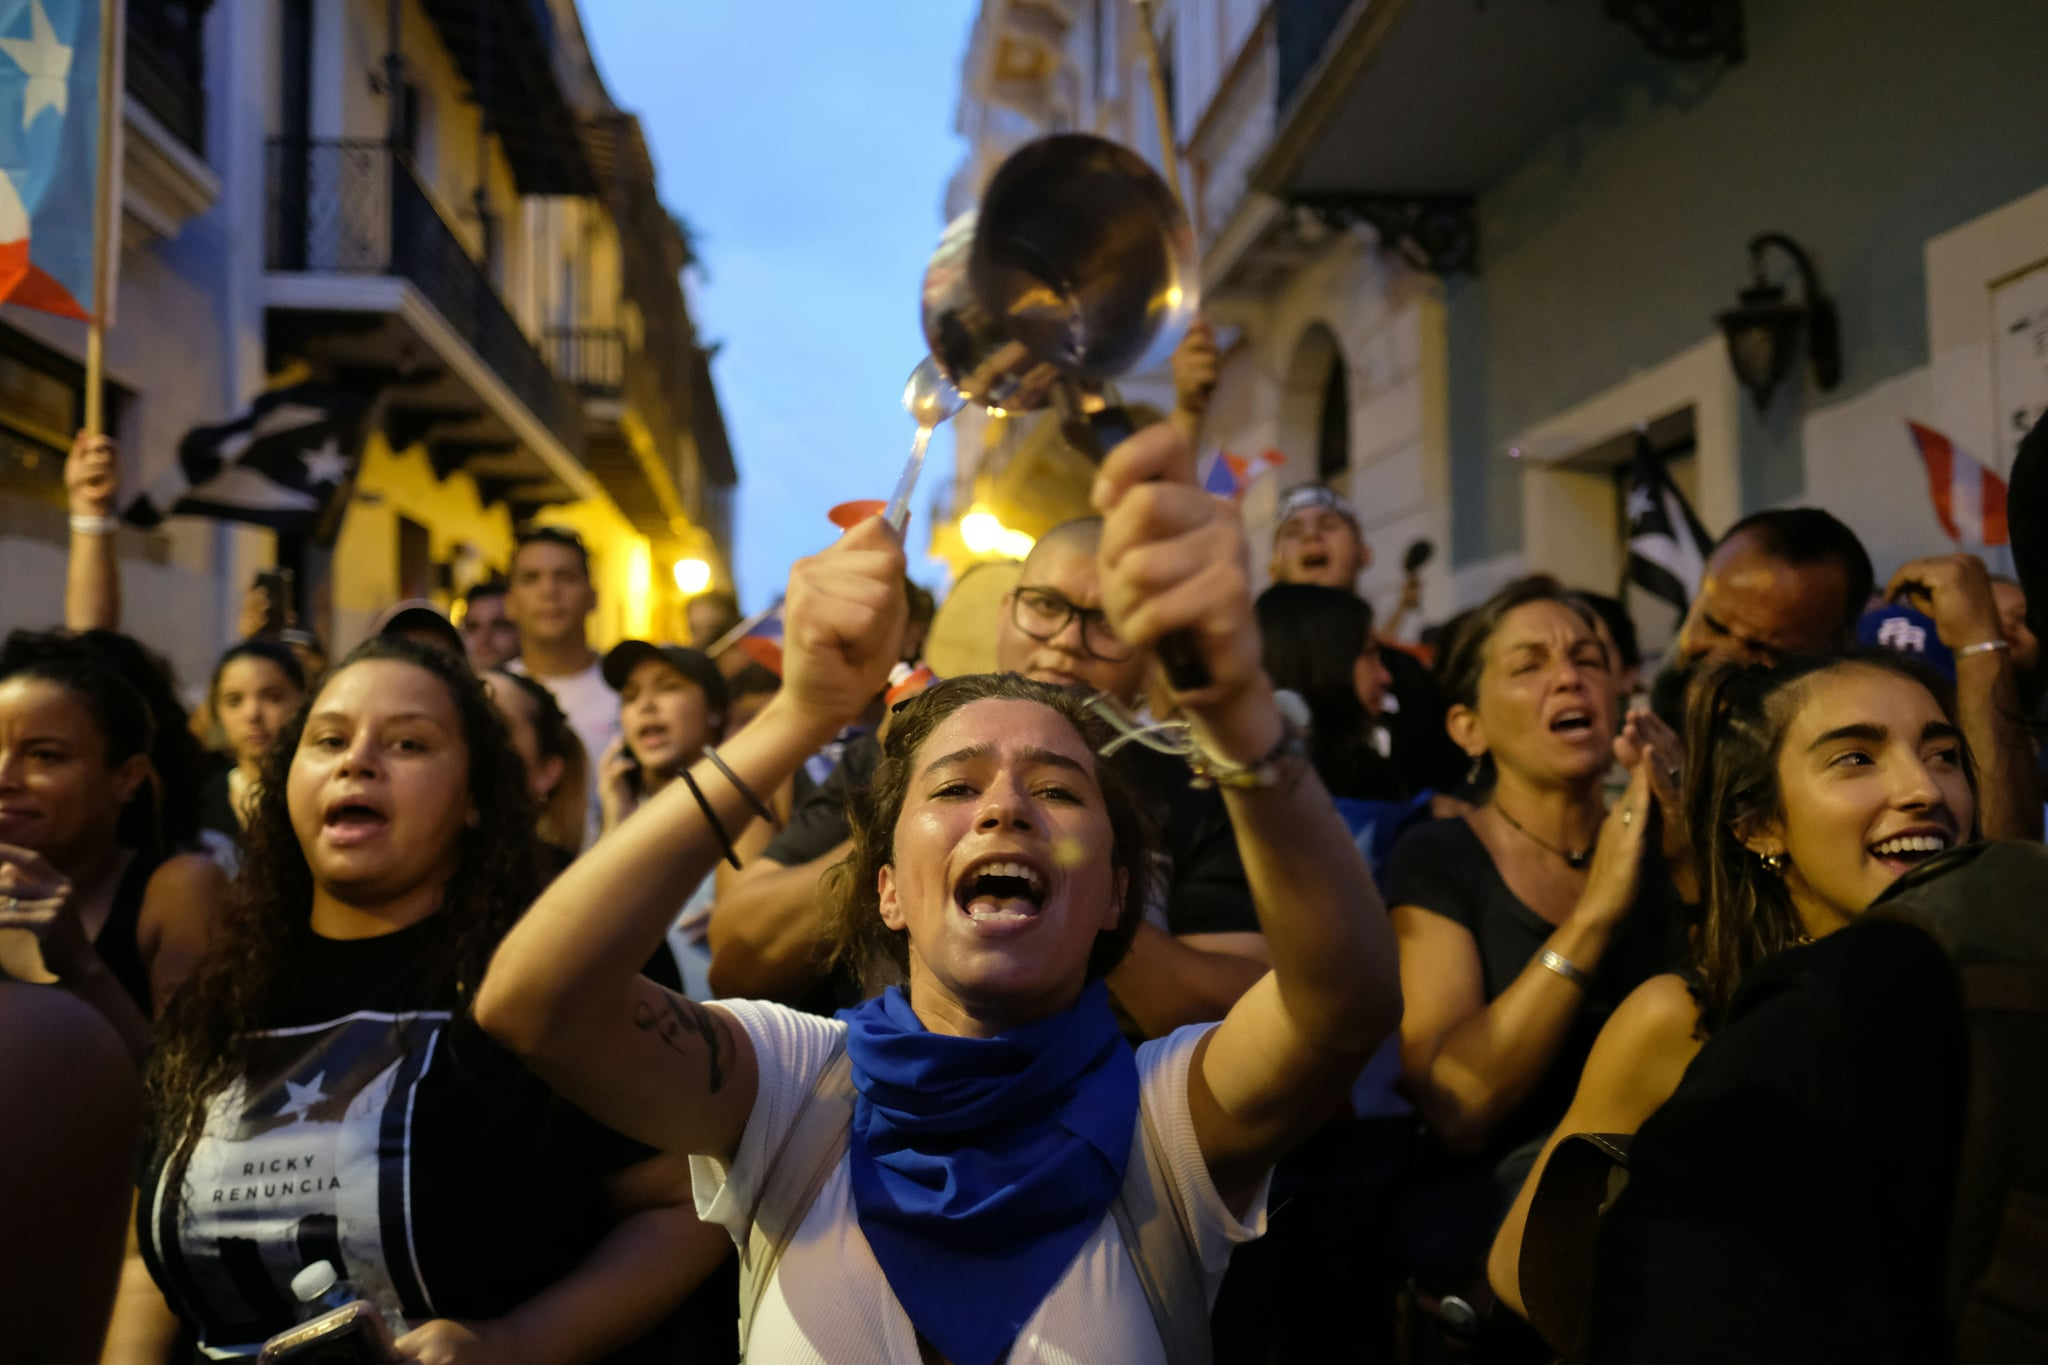 Demonstrators protest in front of the mansion of Puerto Rico's Governor, Ricardo Rossello, known as La Fortaleza, in San Juan, Puerto Rico, on July 24, 2019. - Puerto Rico's embattled governor was reportedly preparing to resign Wednesday, yielding to huge street protests in the US territory triggered by the release of a chat exchange in which he and others mocked gays, women and hurricane victims. Huge crowds of Puerto Ricans have been demonstrating regularly since pages and pages of chat exchanges were made public. (Photo by Ricardo ARDUENGO / AFP)        (Photo credit should read RICARDO ARDUENGO/AFP/Getty Images)